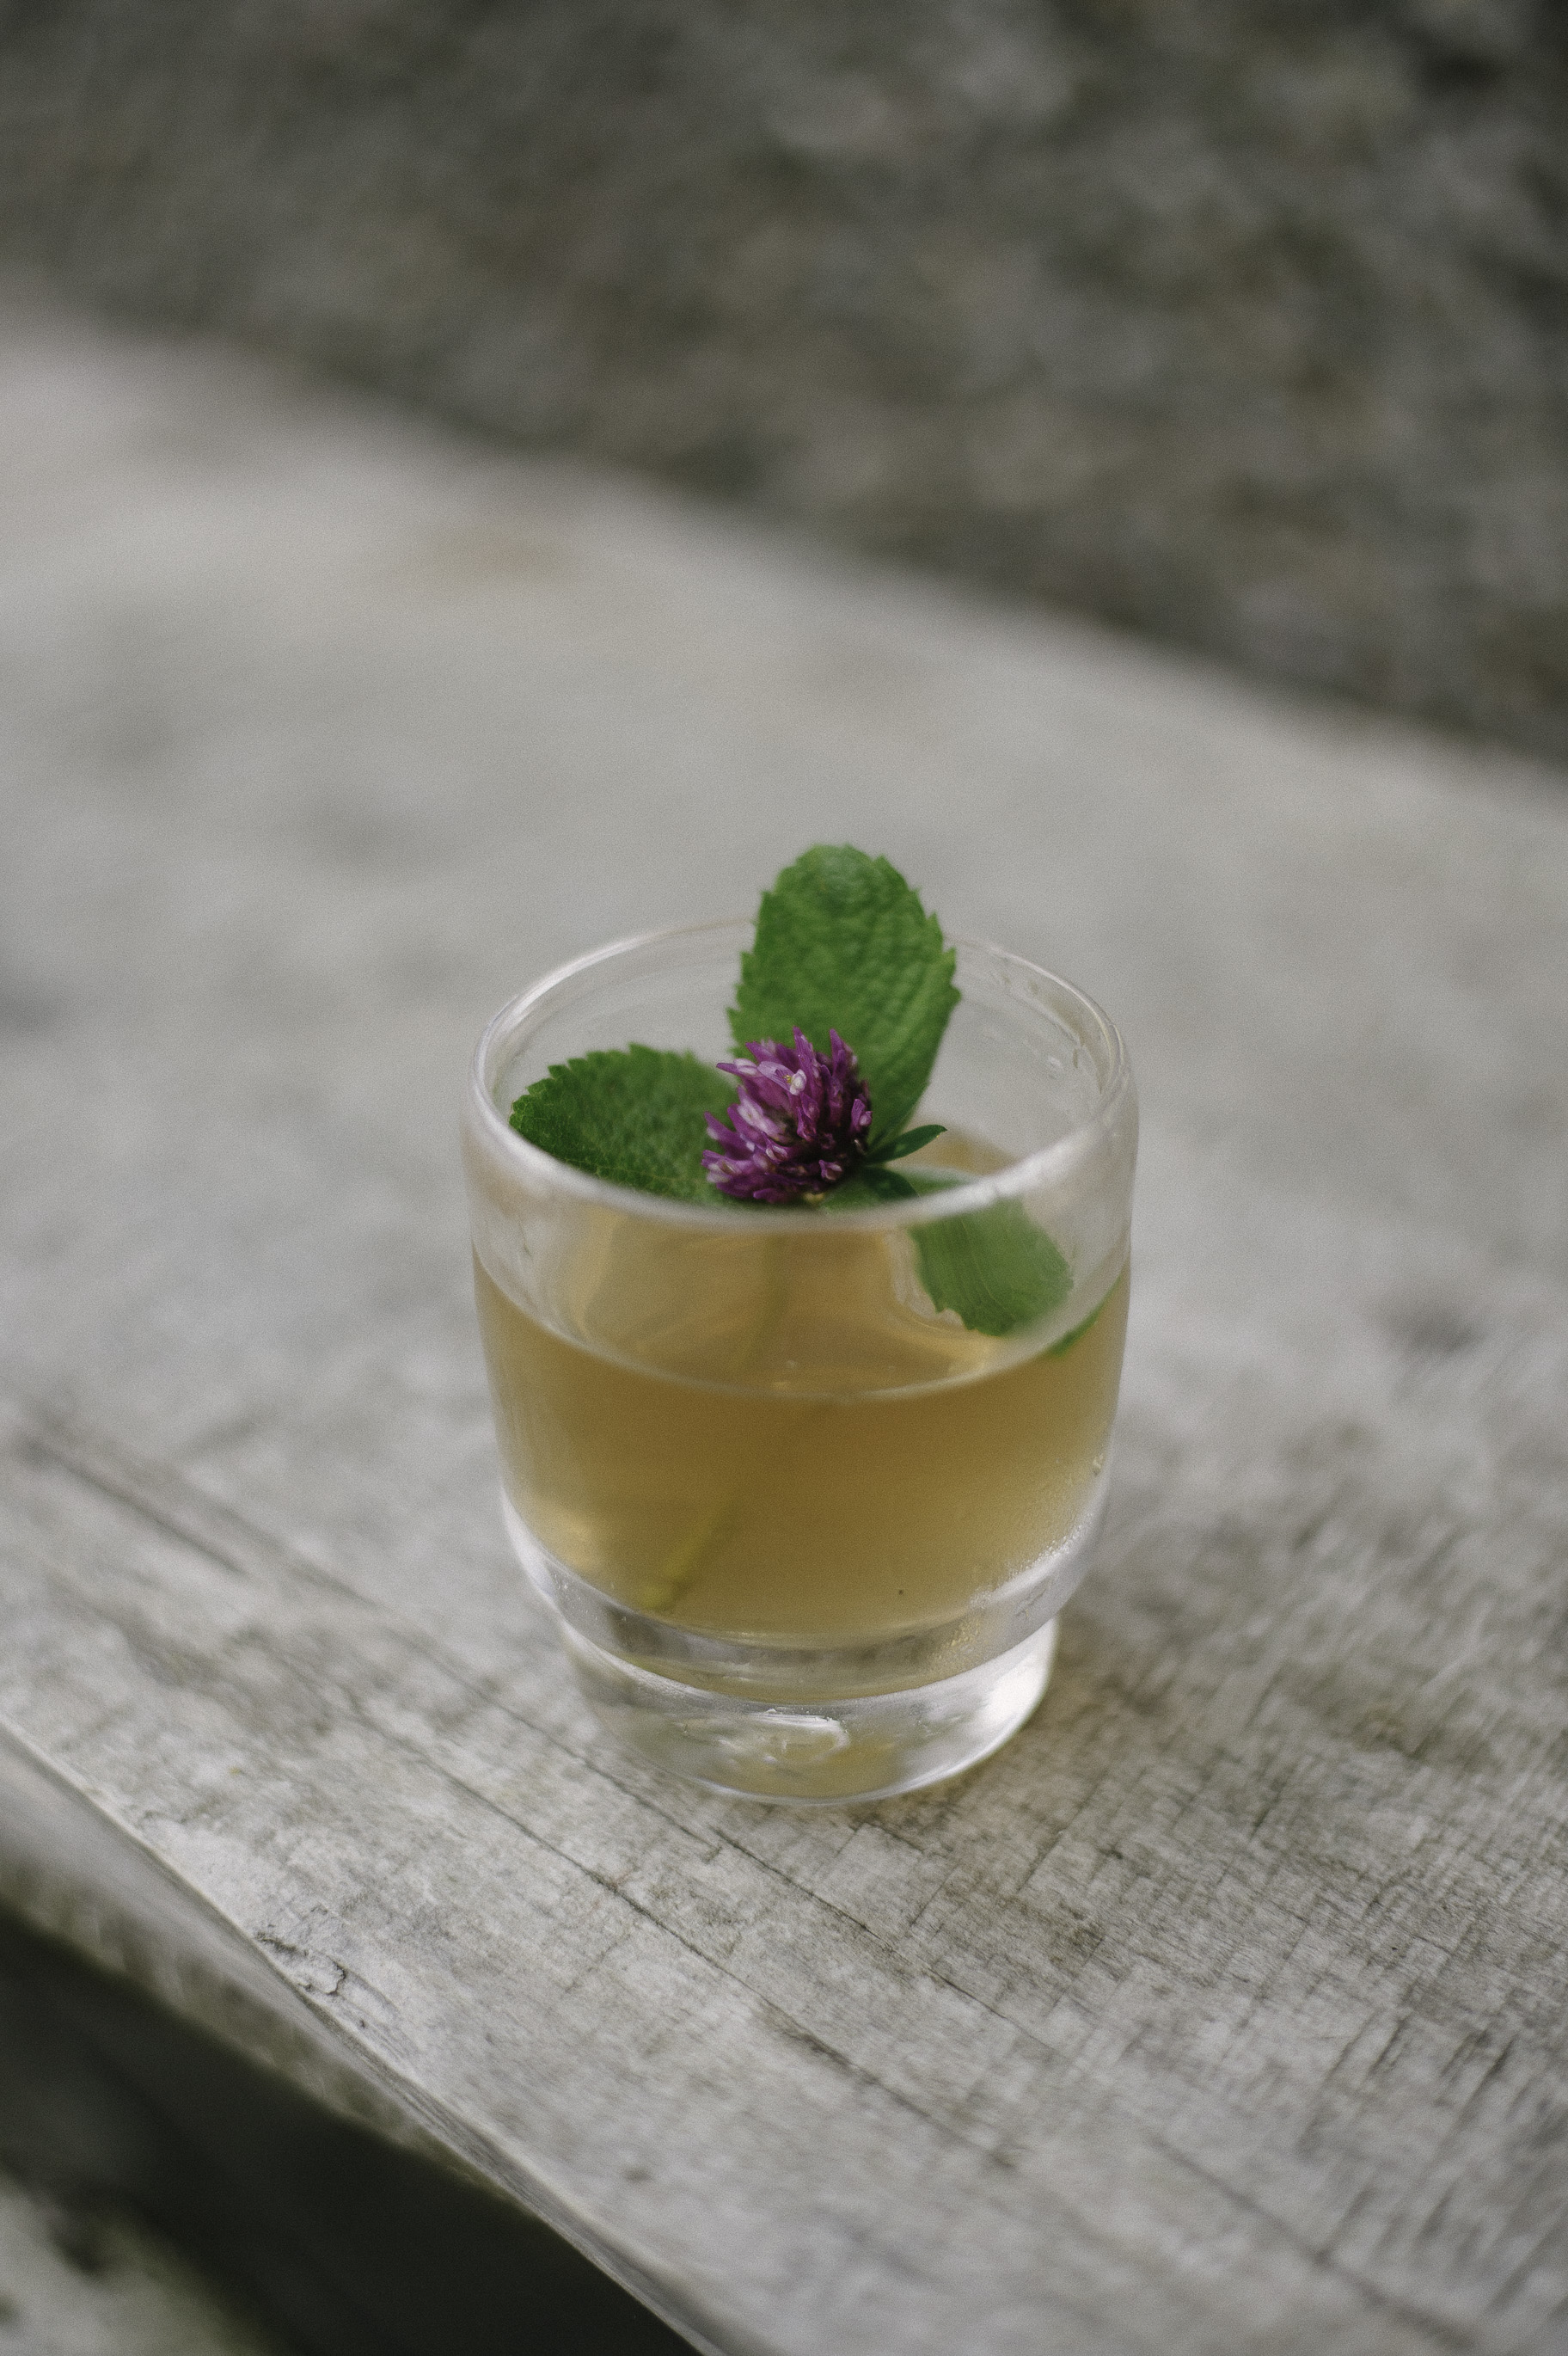 The Druid  - 50ml Prizefight Whiskey10ml Red Clover Lemonade SyrupFresh Mint & Clover to garnish.Muddle a little mint in a shaker, pour over whiskey and syrup, add ice. Stir and strain into glass. Garnish with fresh mint and clover.